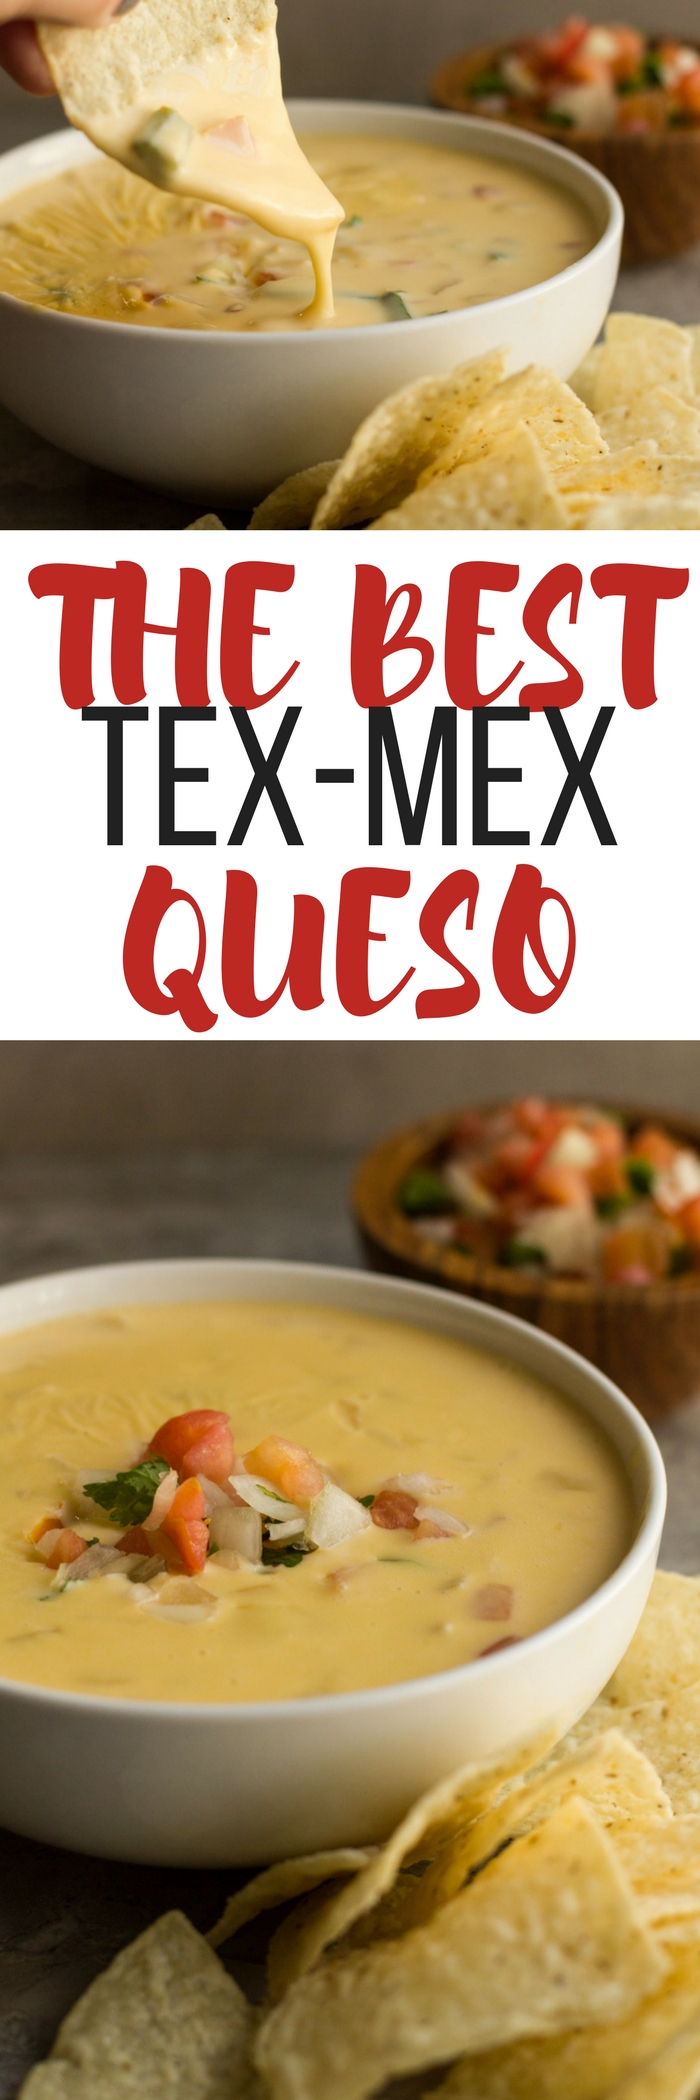 The BEST Tex Mex Queso - made WITHOUT Velveeta and Rotel. This recipe is just like what you find in restaurants.